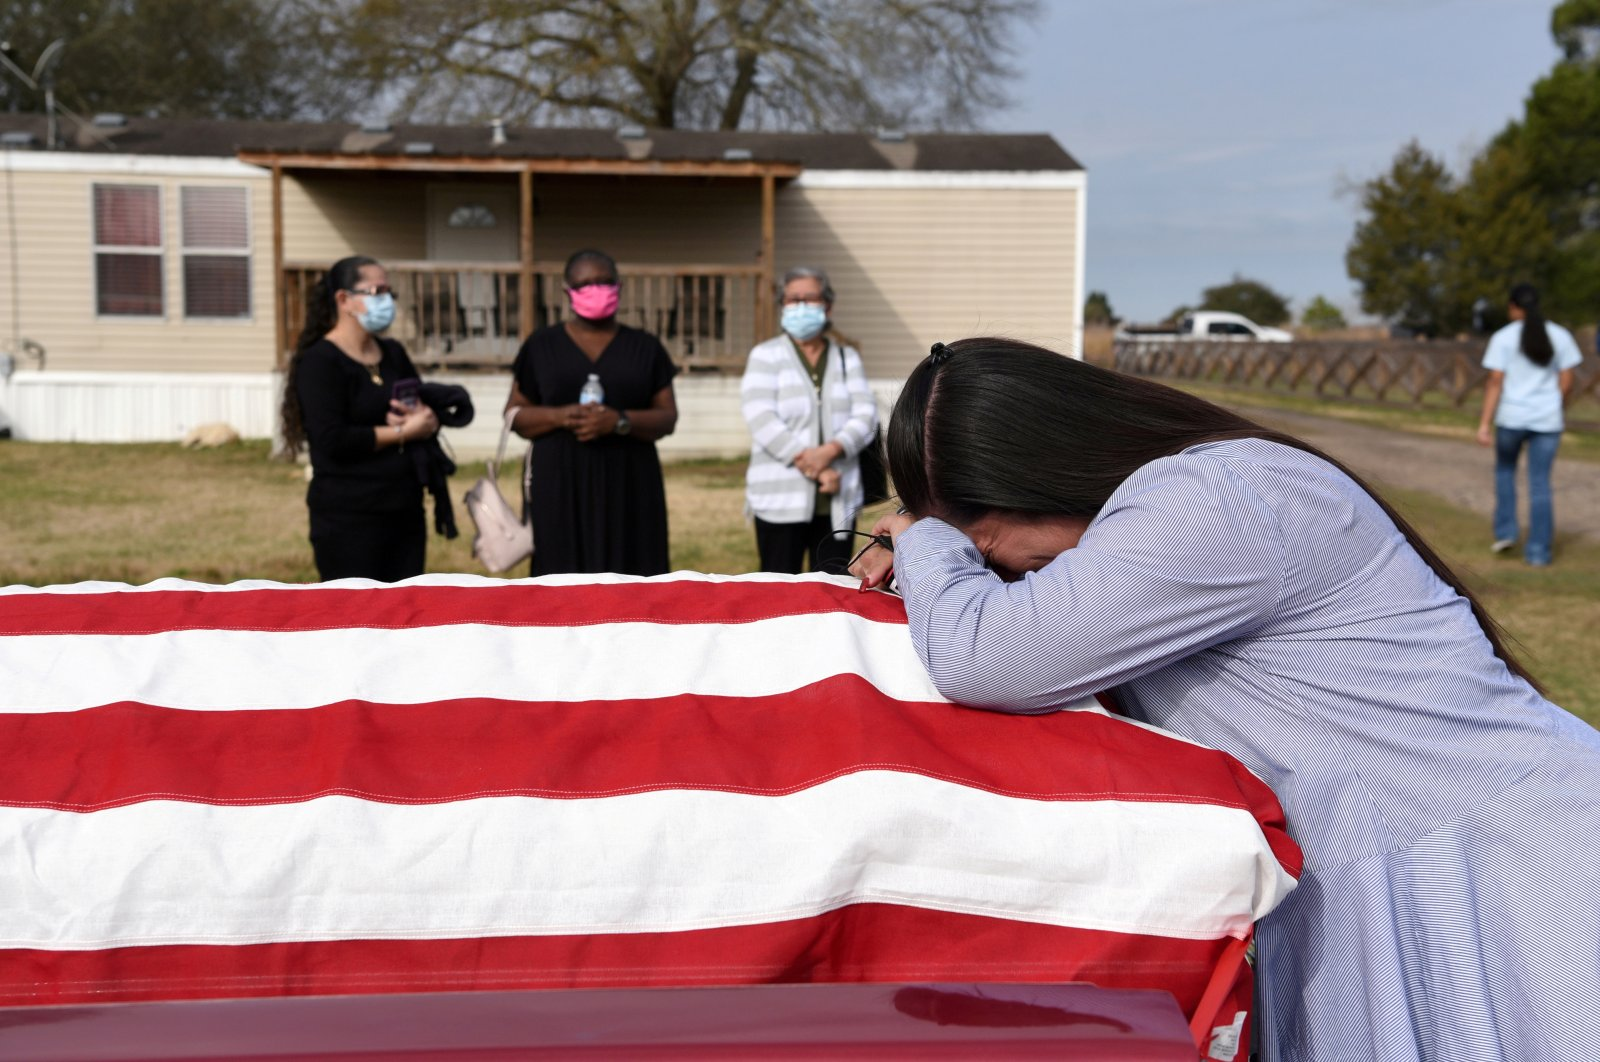 Lila Blanks holds the casket of her husband, Gregory Blanks, 50, who died of the coronavirus, ahead of his funeral in San Felipe, Texas, U.S., Jan. 26, 2021. (Reuters Photo)